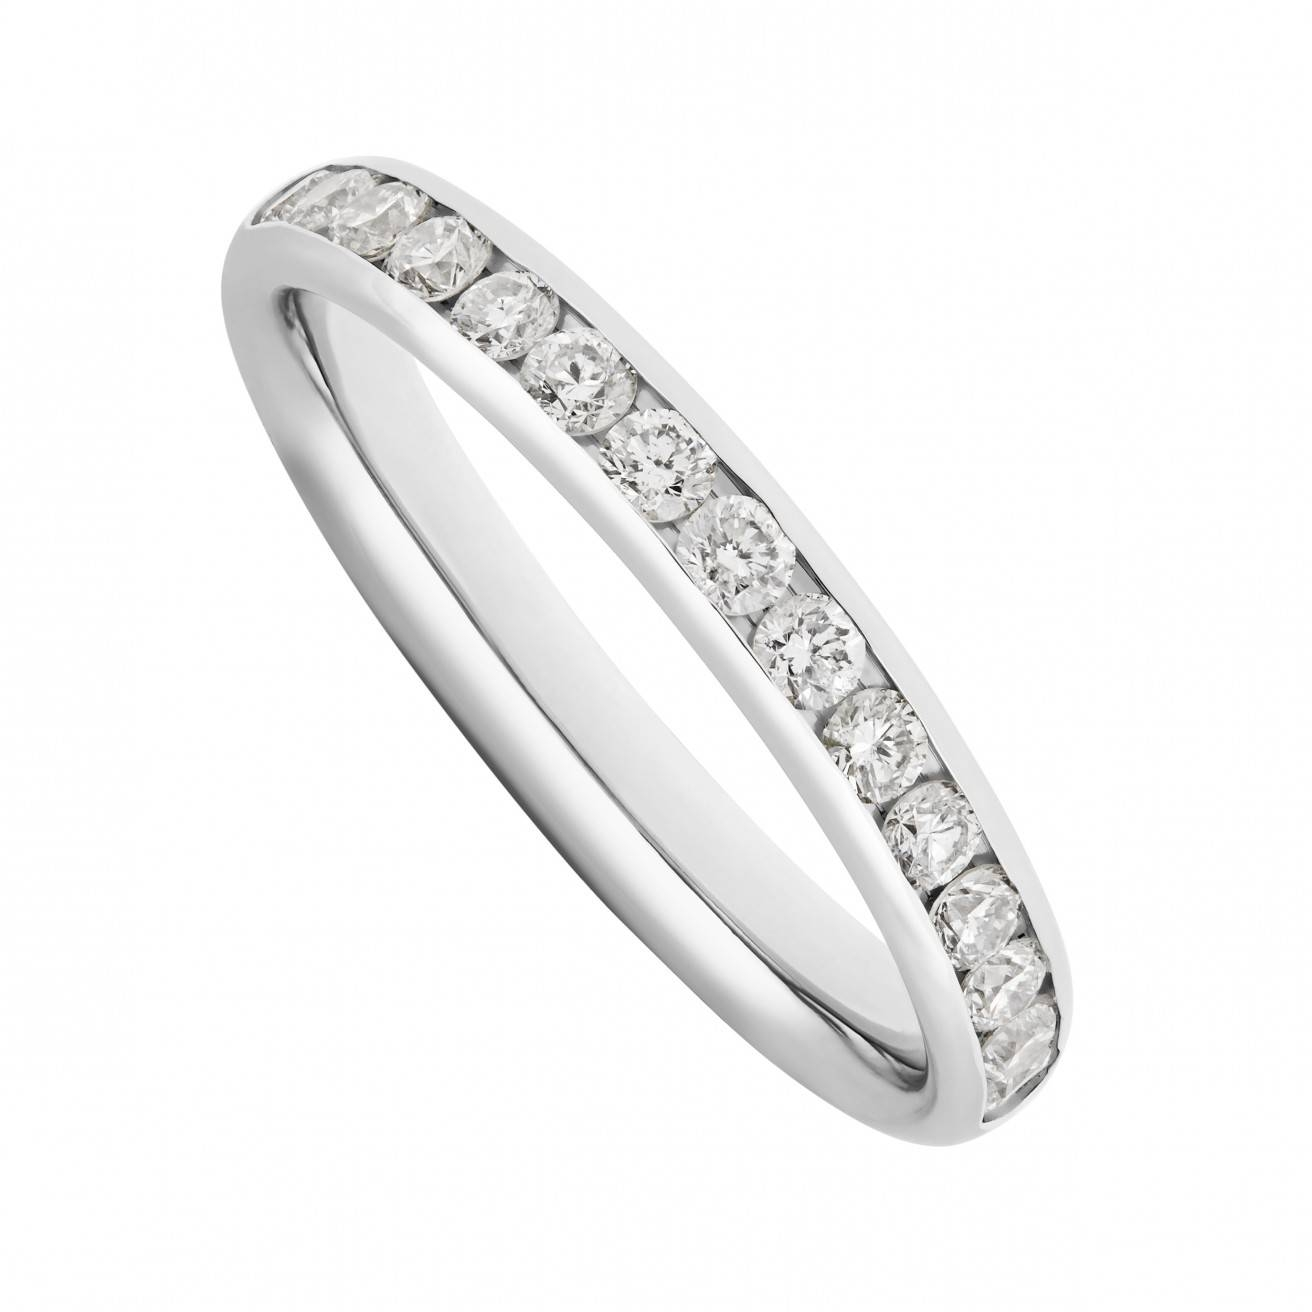 Buy Platinum Wedding Bands Online – Fraser Hart Pertaining To Platinum Ladies Wedding Rings (View 3 of 15)